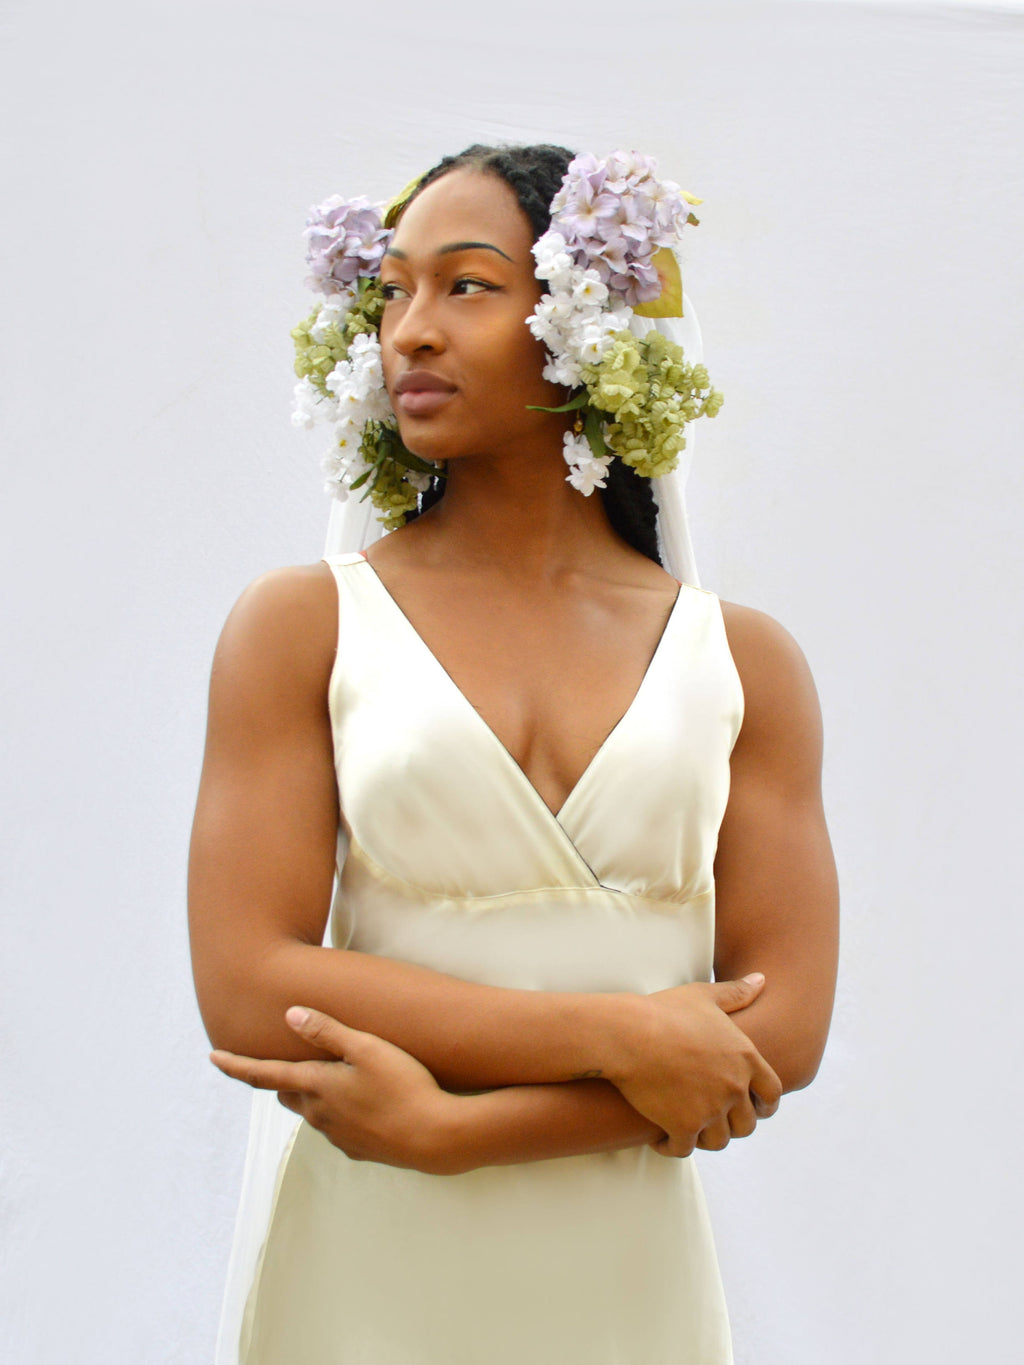 beautiful model in white wedding dress and purple and green flower crown veil